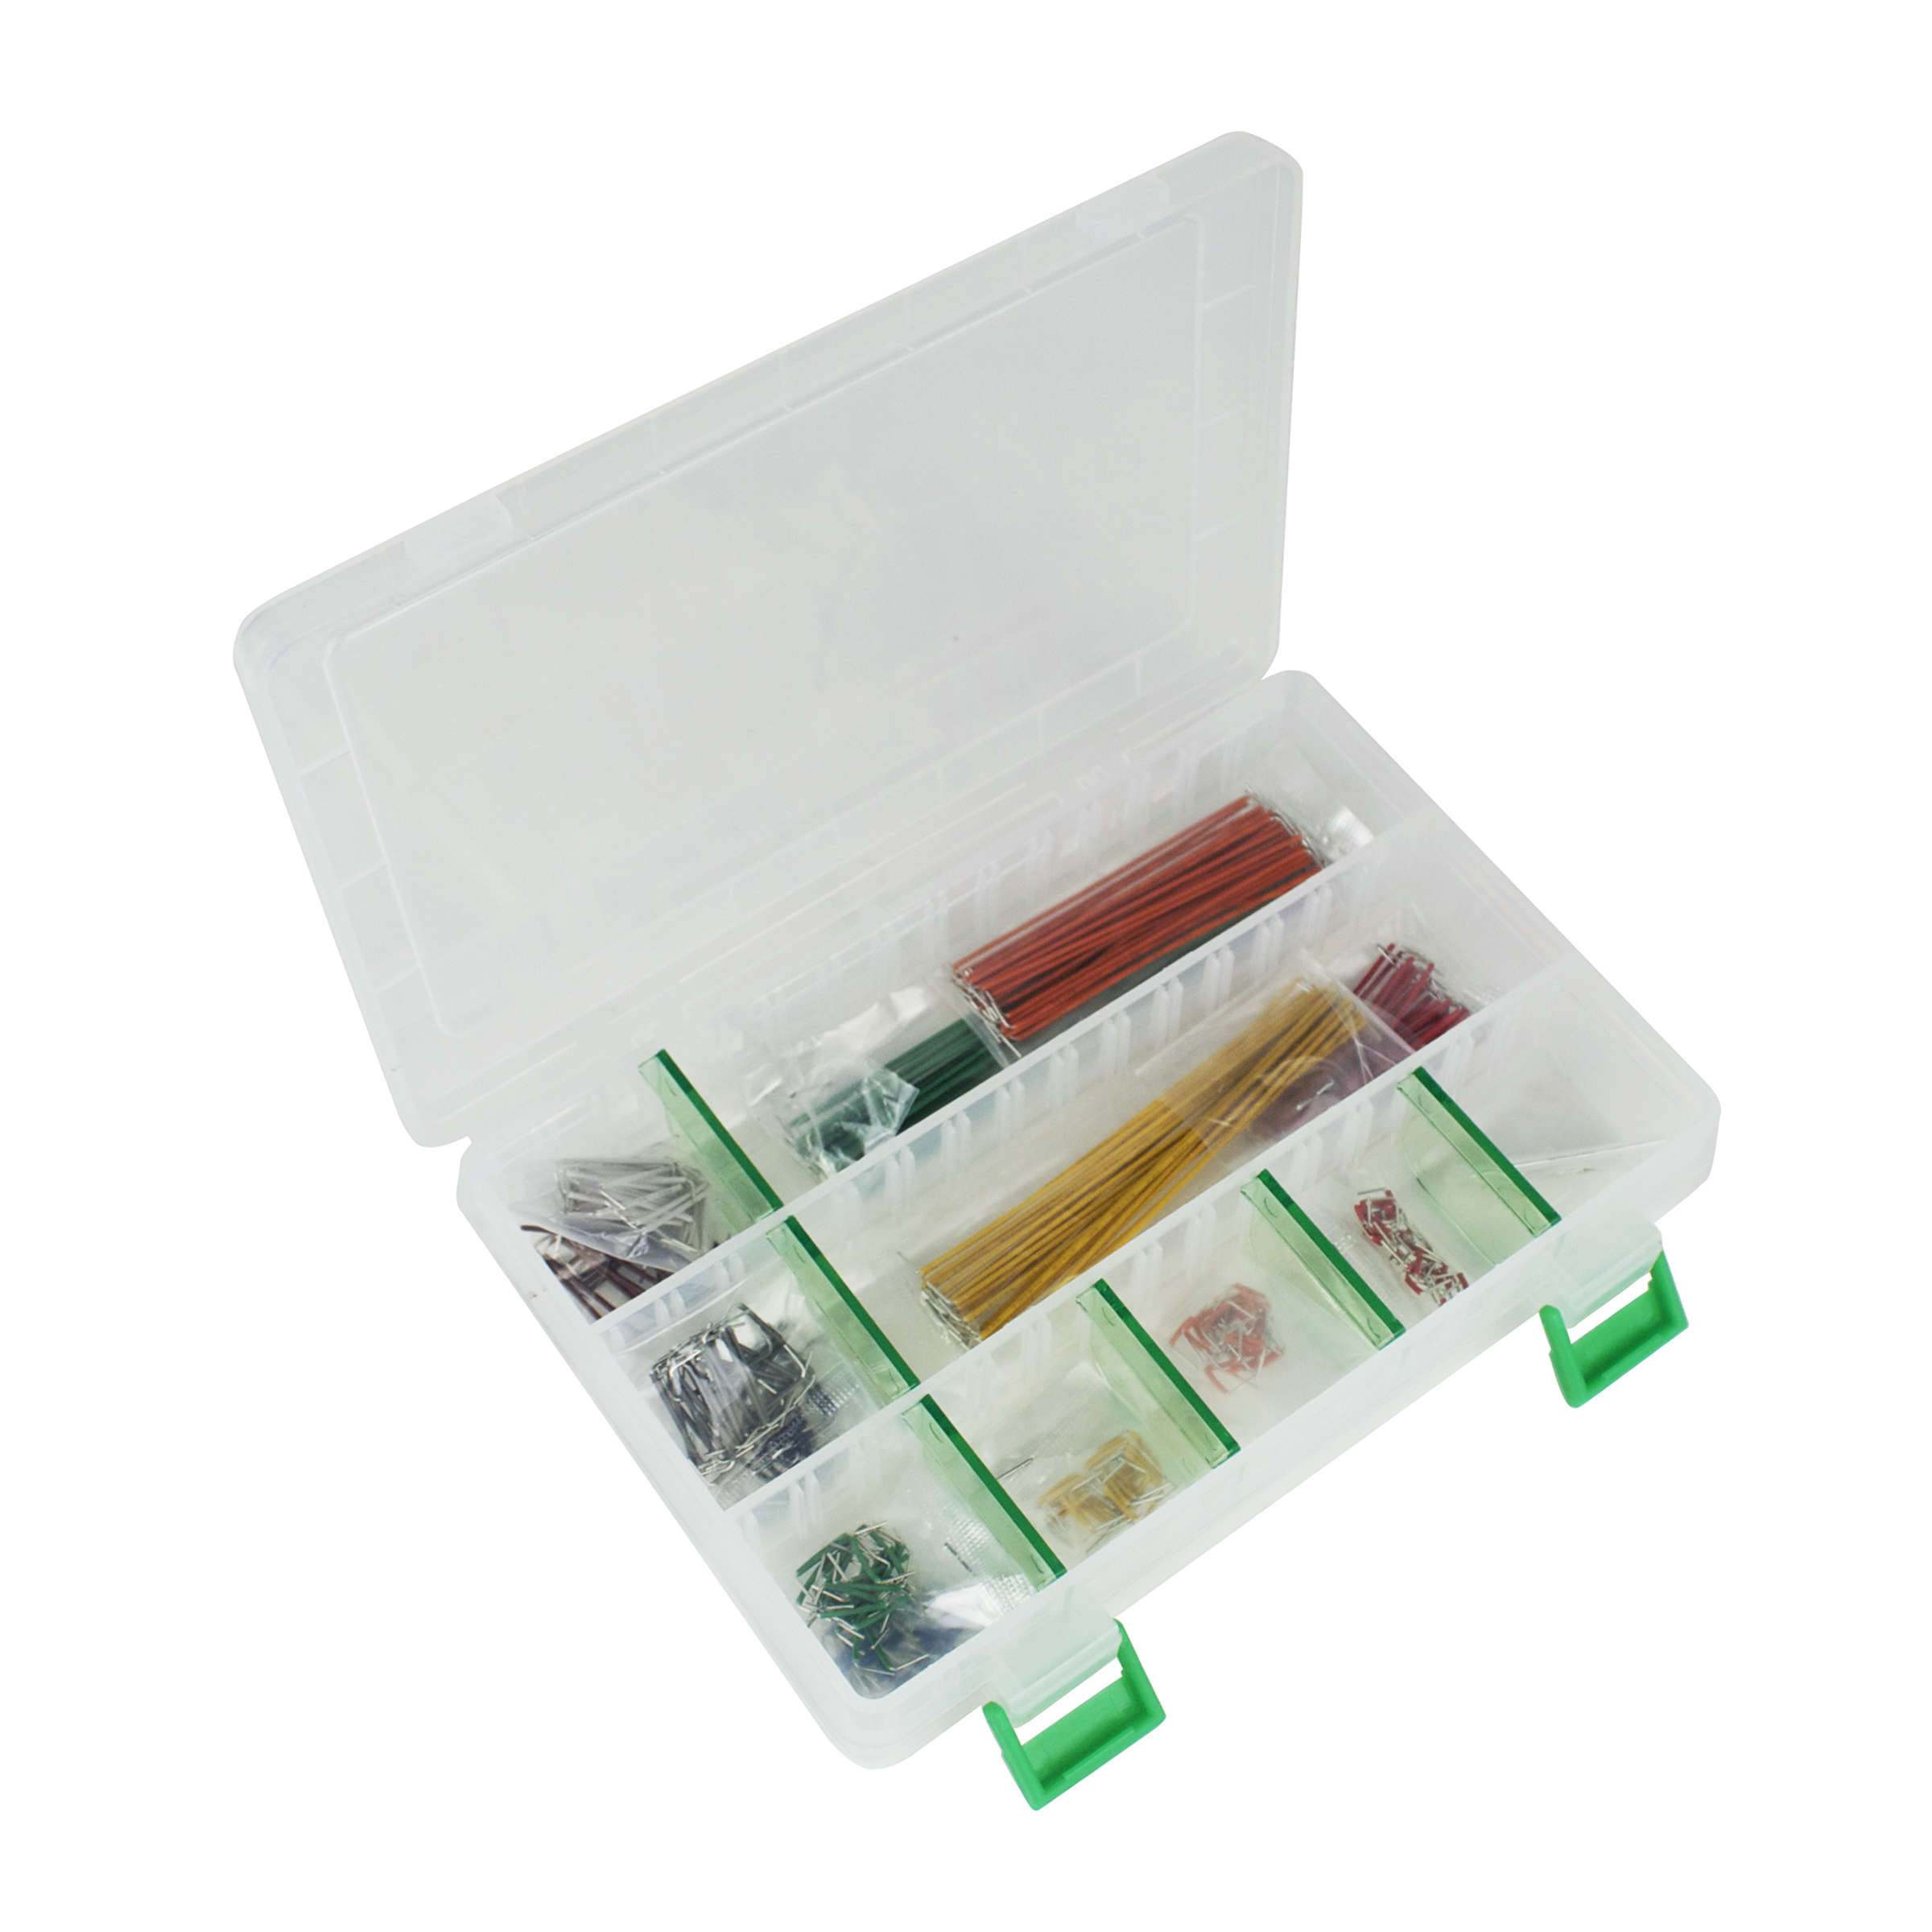 Global Specialties WK-1 Jumper Wire Kit, 350 Pcs